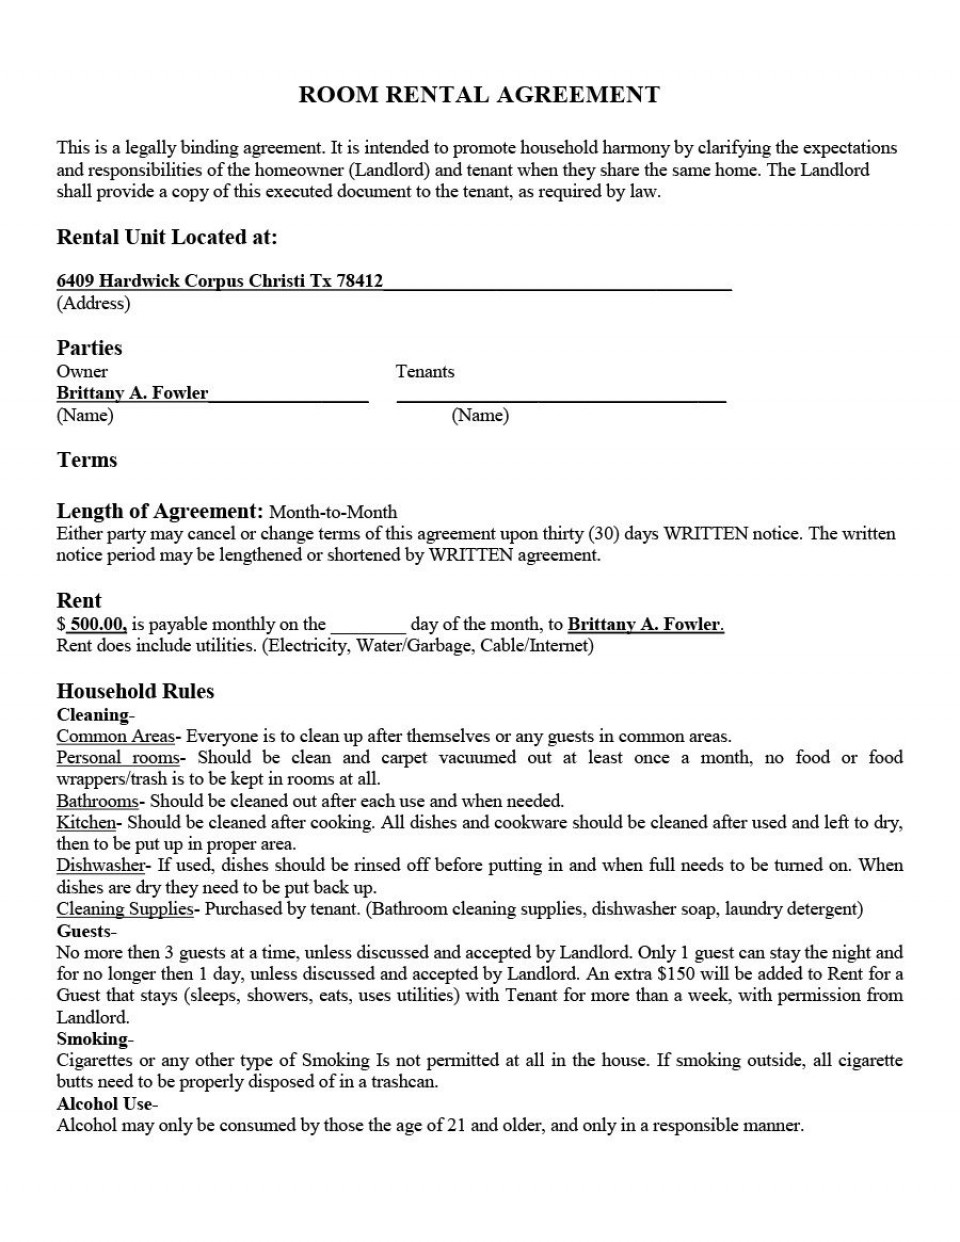 008 Fearsome Generic Room Rental Agreement Free High Definition  Printable960